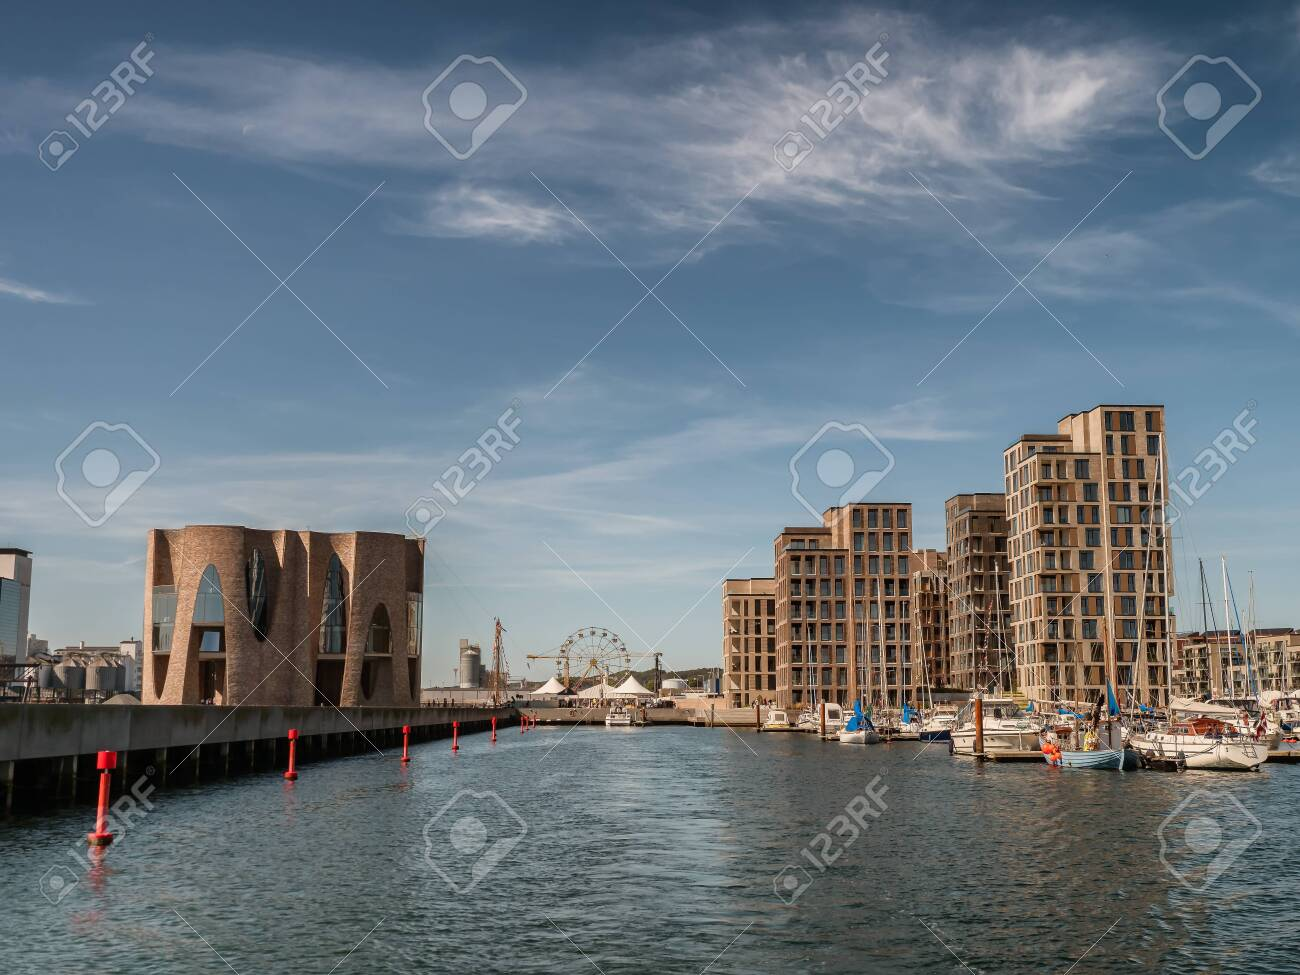 Vejle inner marina harbor with modern apartments and small boats, Denmark - 129152033